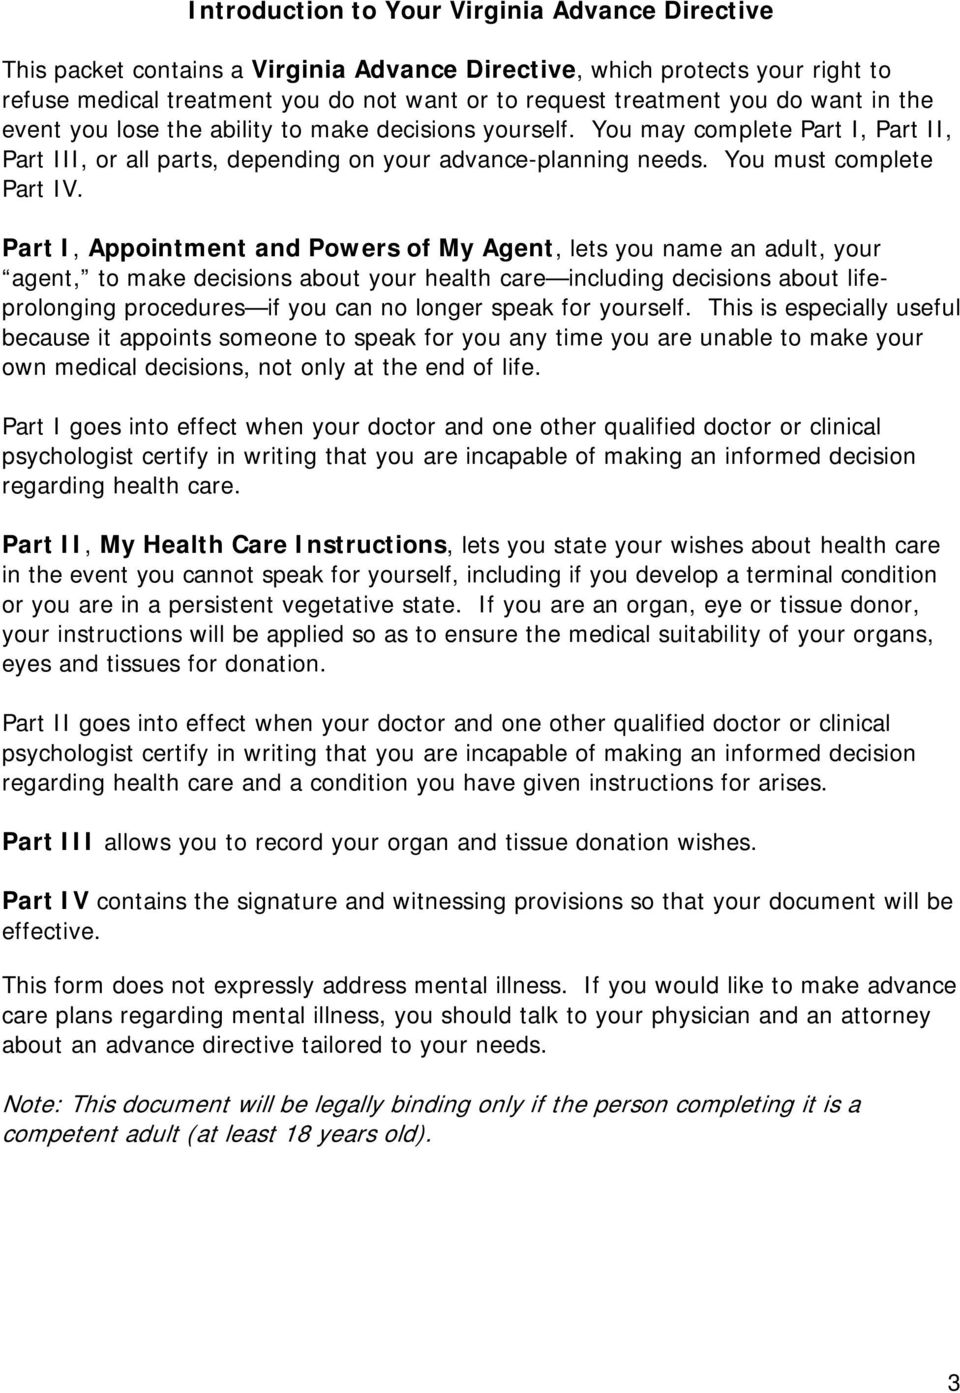 Part I, Appointment and Powers of My Agent, lets you name an adult, your agent, to make decisions about your health care including decisions about lifeprolonging procedures if you can no longer speak